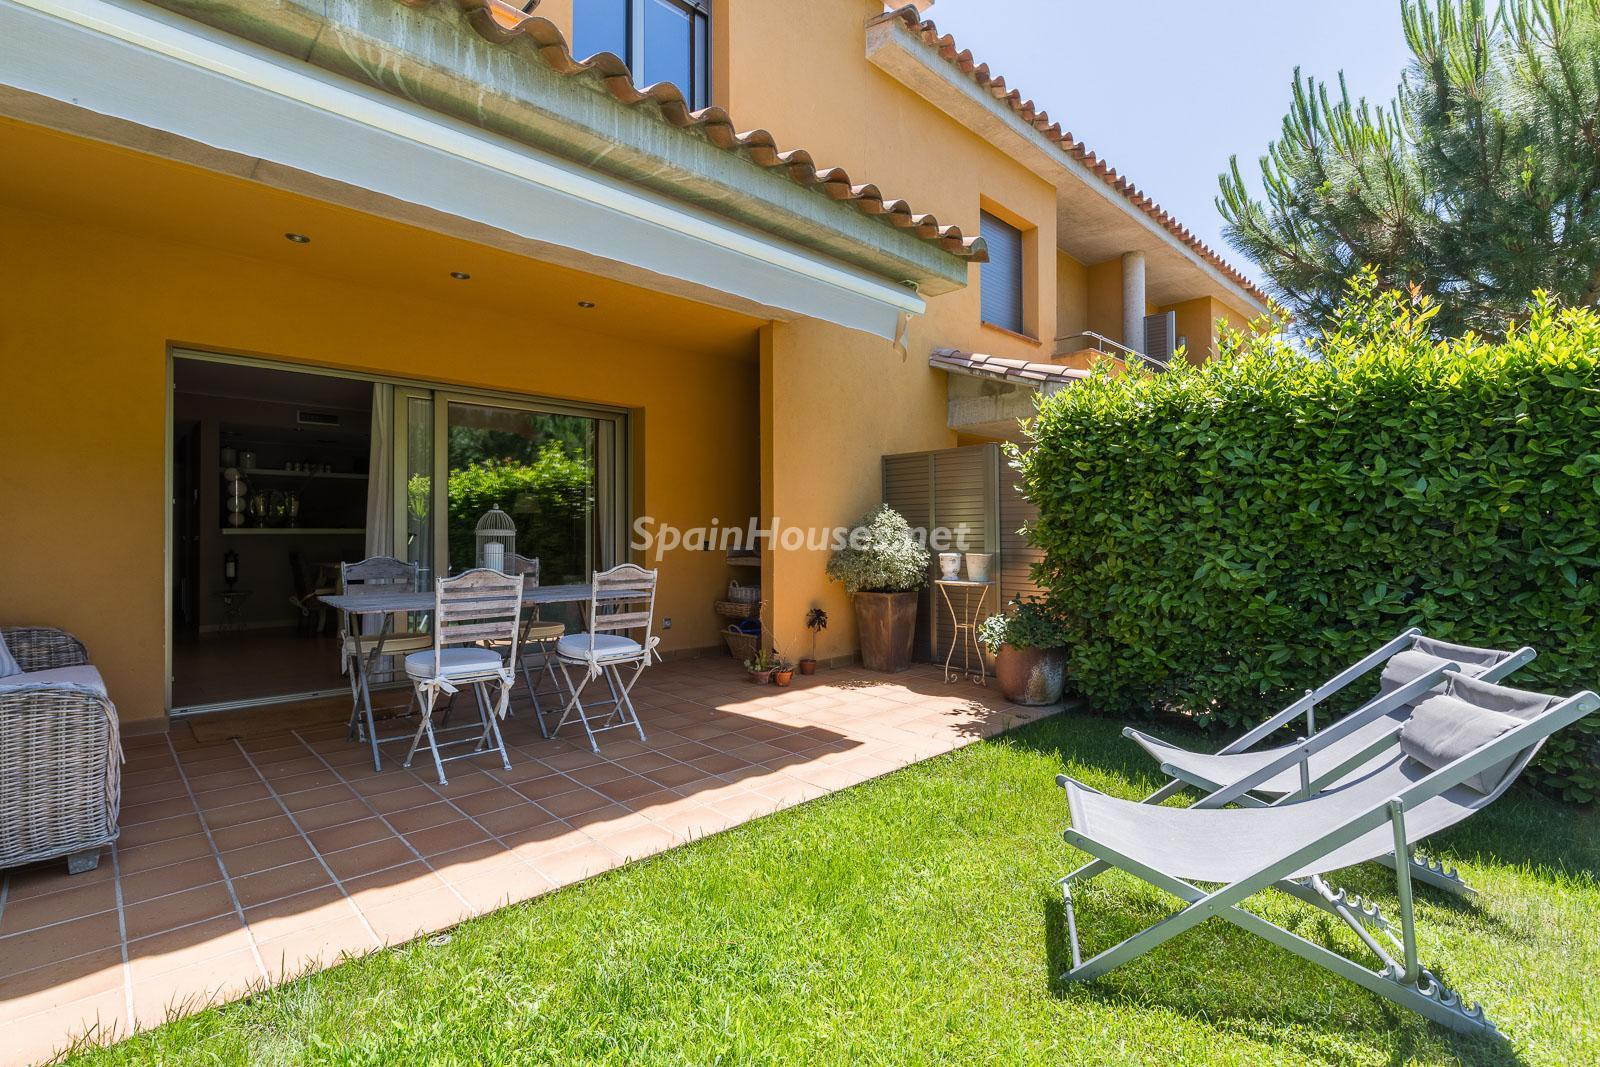 65057482 2001051 foto 125198 - Find your dream home in Spain: these ones are close to the beach!